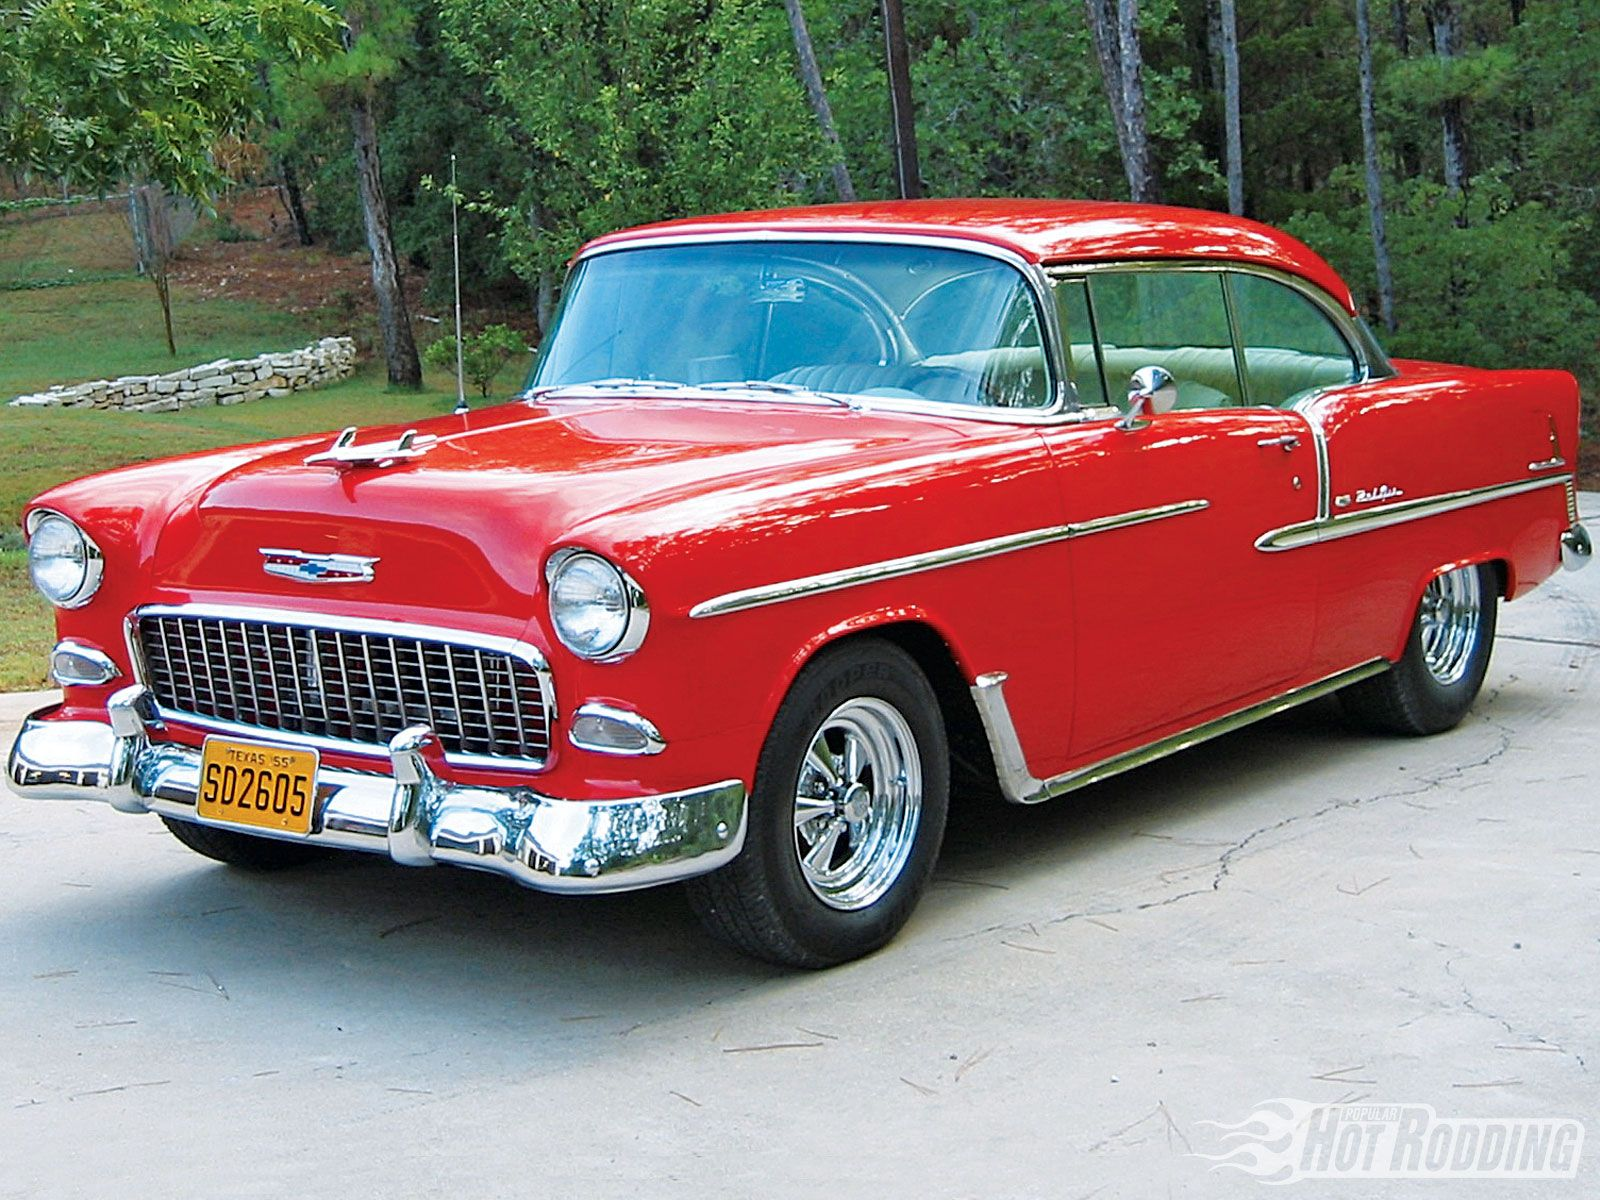 1956 chevrolet bel air for sale classic car liquidators - 1955 Chevy Bel Air Coupe